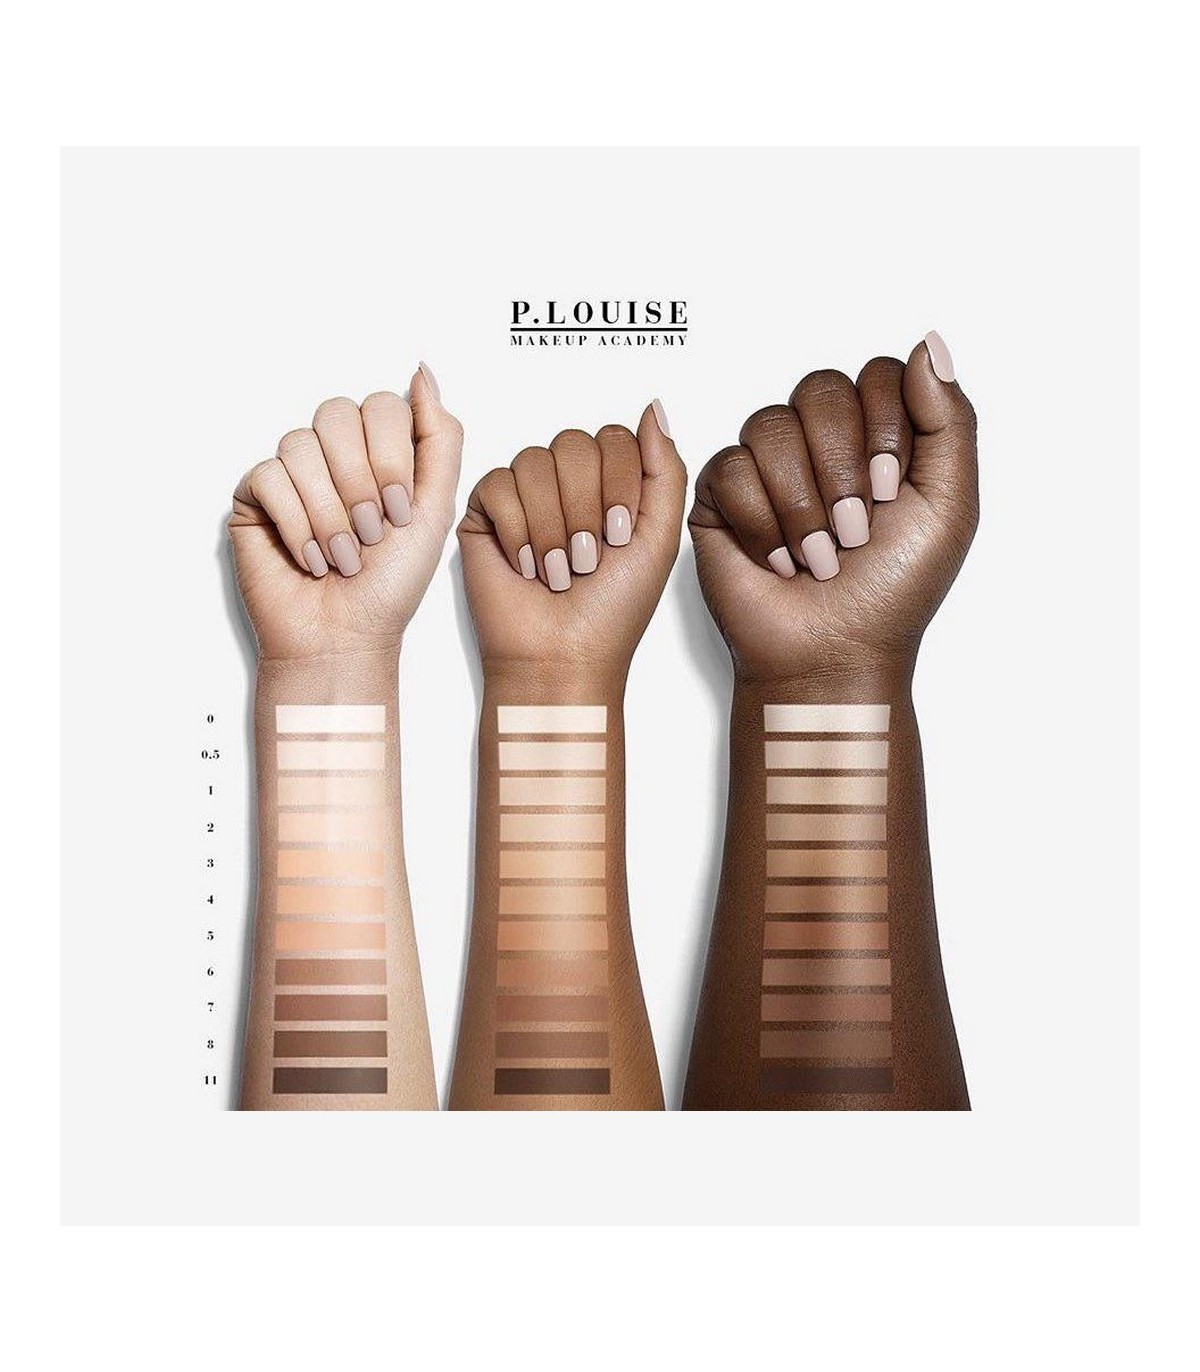 P Louise Base Shade 7 15ml Plouise On Ckarlysbeauty Com Price 16 95